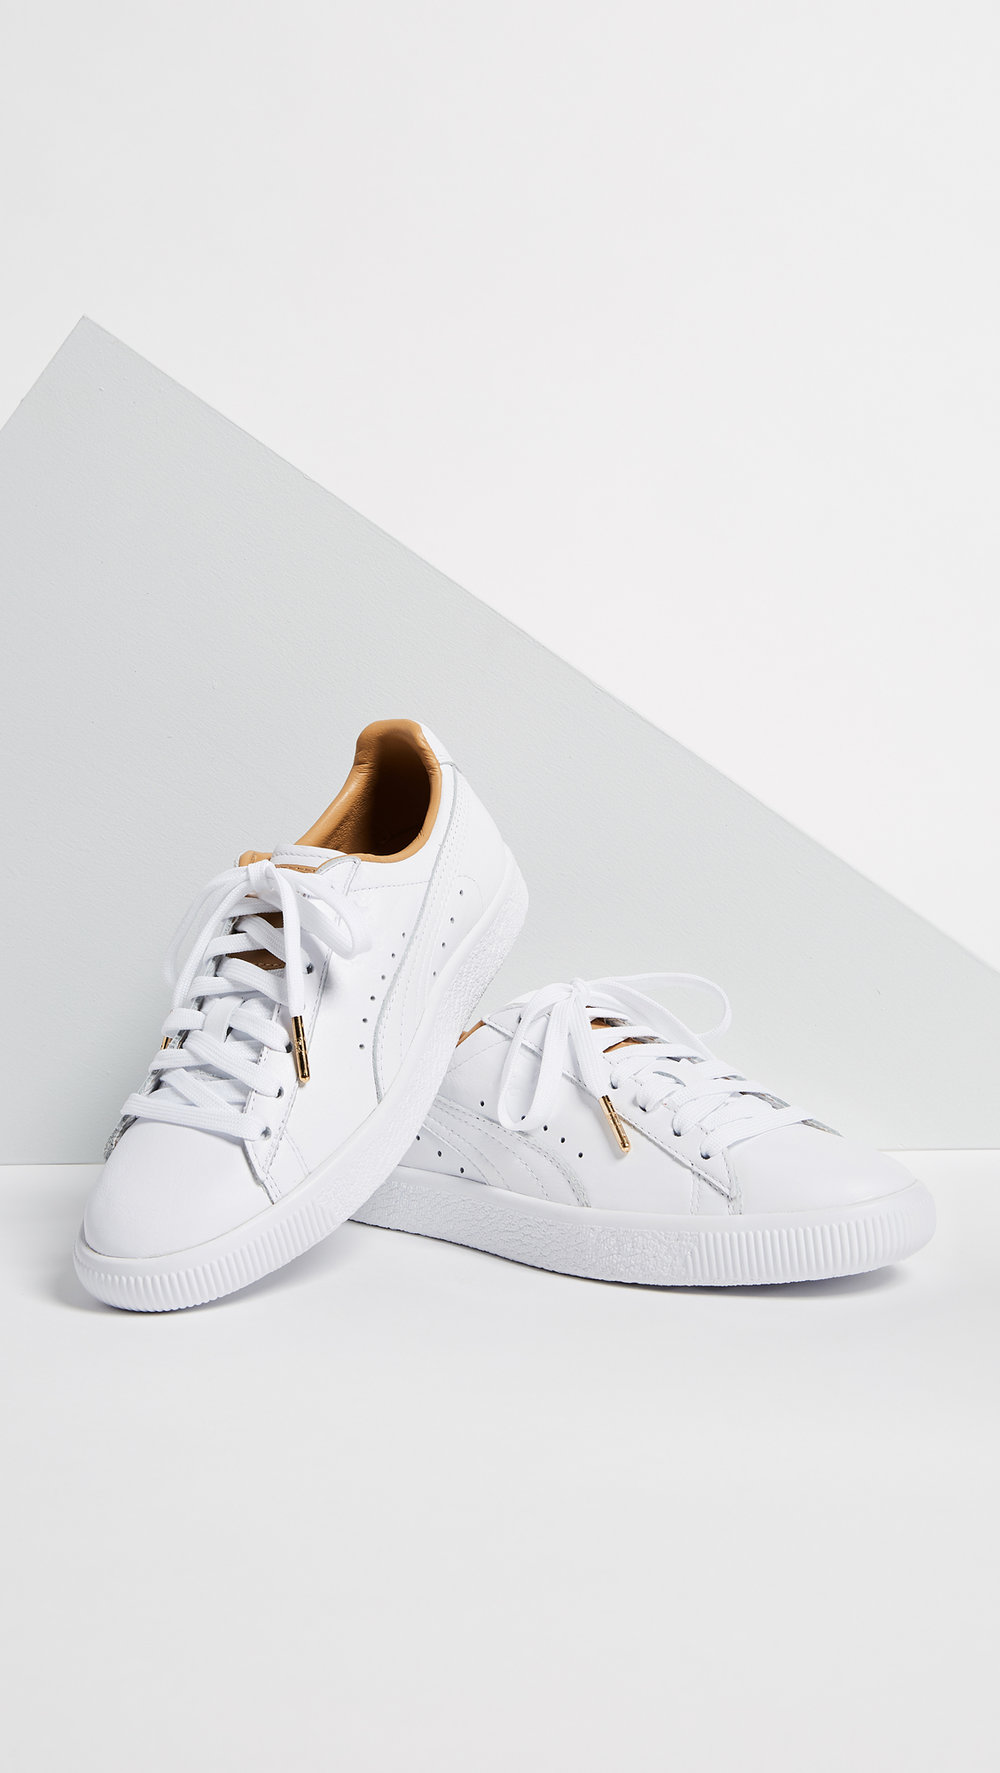 PUMA CLYDE CORE LEATHER SNEAKERS  SHOP HERE